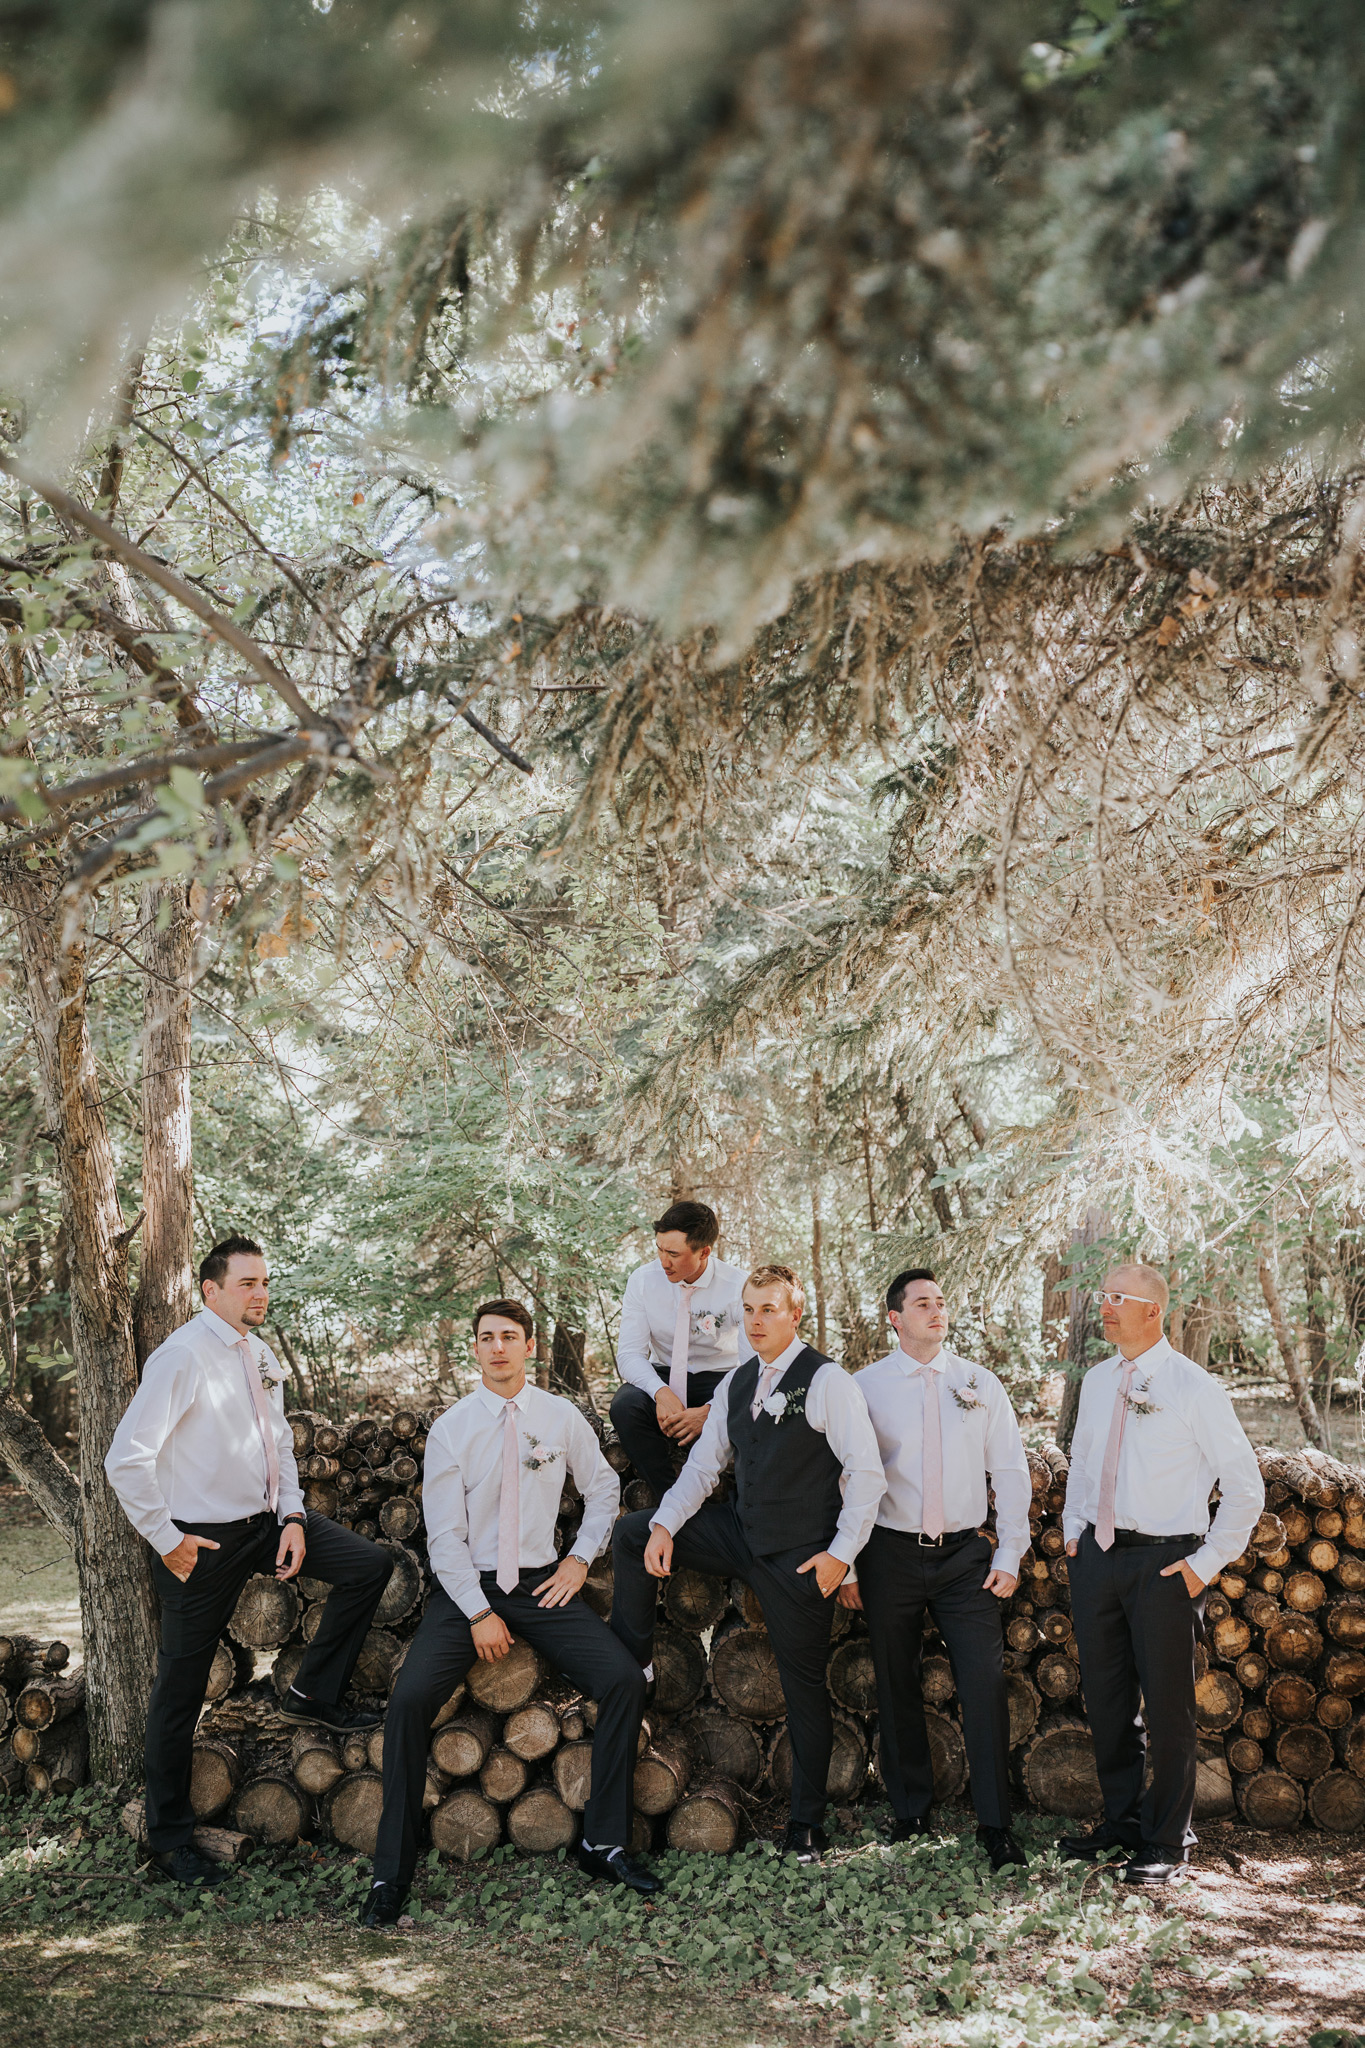 groomsmen serious pose by a log pile